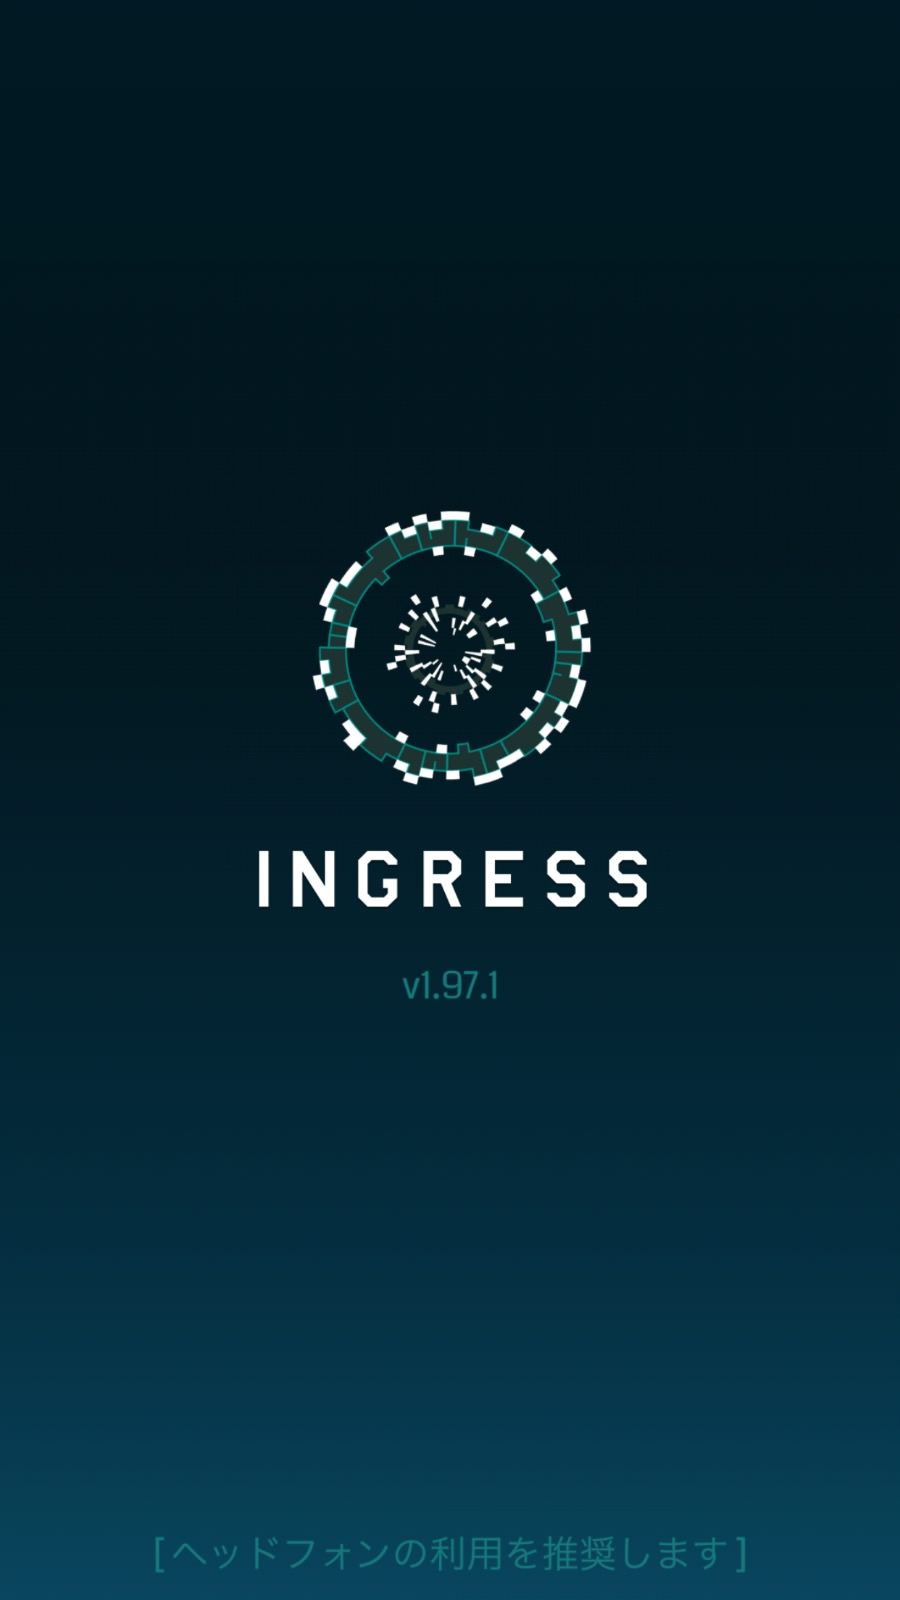 Ingress update 1971 2895